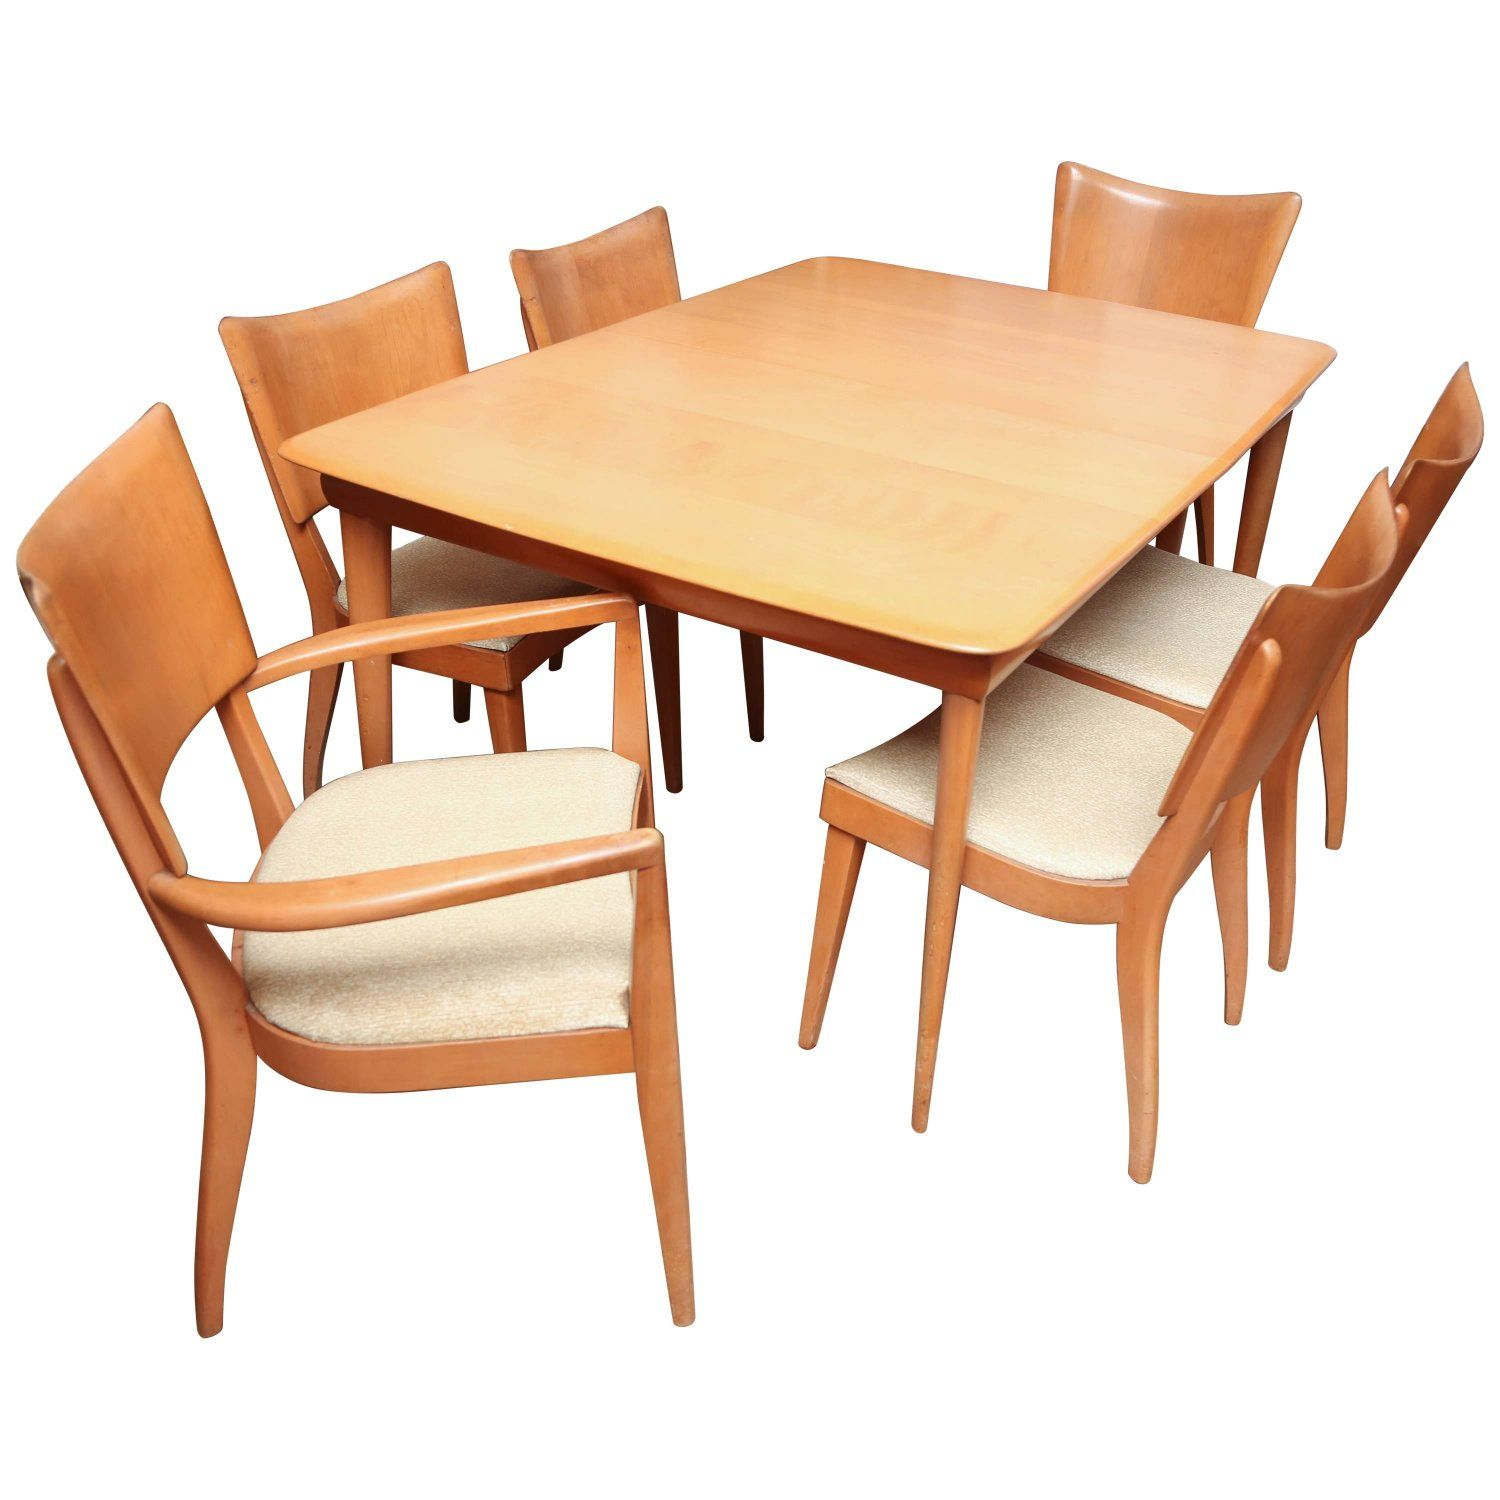 Heywood Wakefield Dining Chairs Heywood Wakefield Dining Room Set With Six Chairs 1960s Usa My